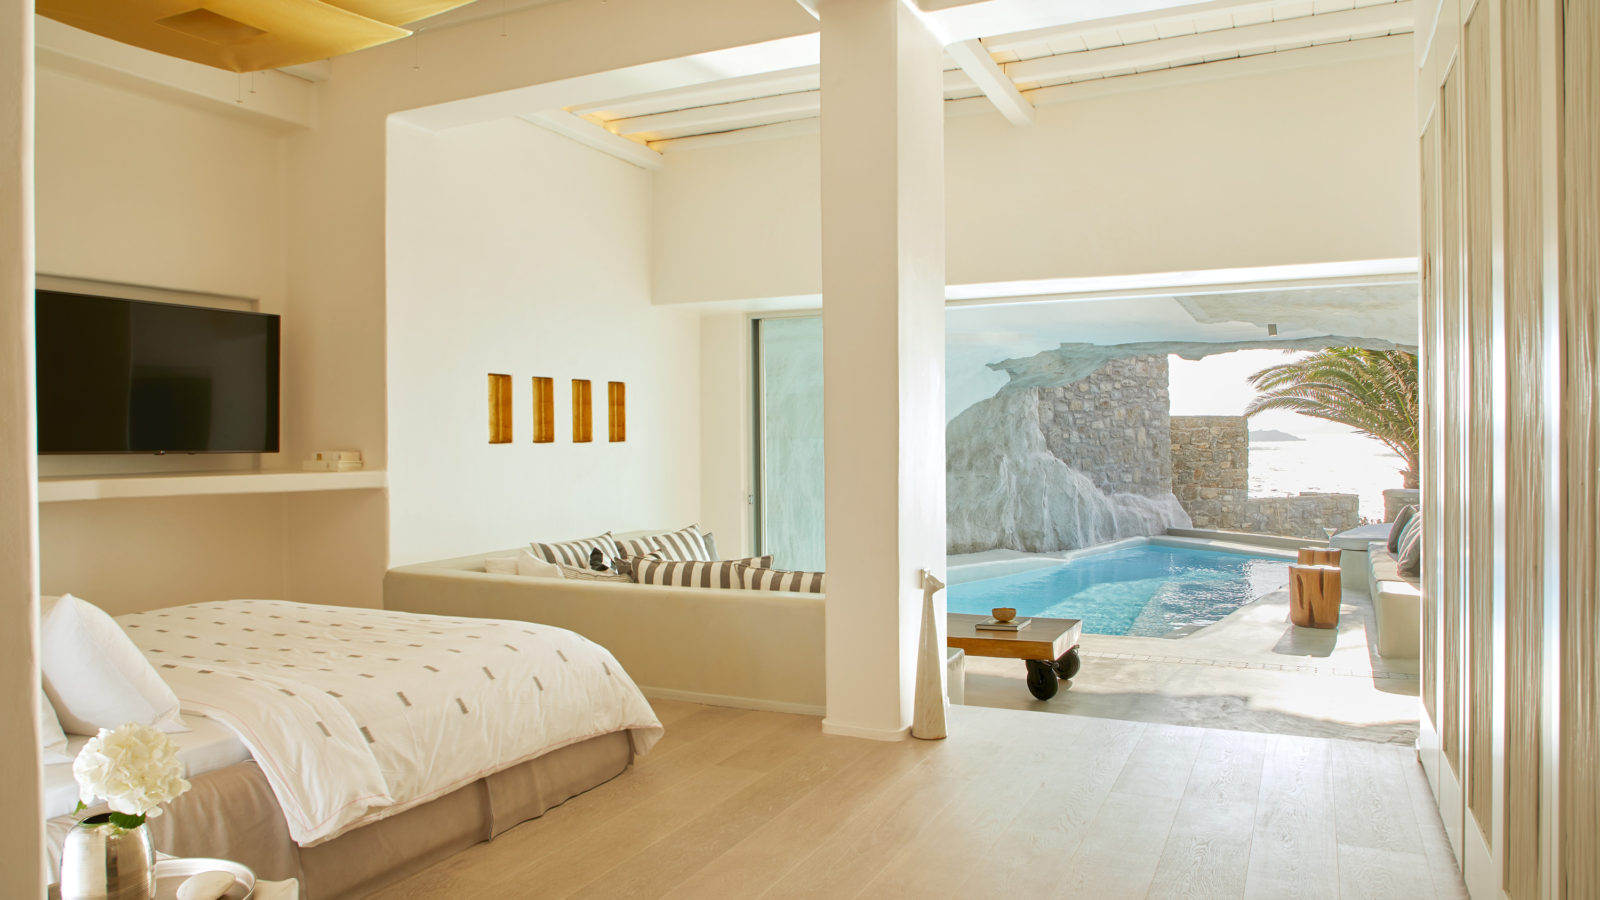 Luxurious accommodation in Greece